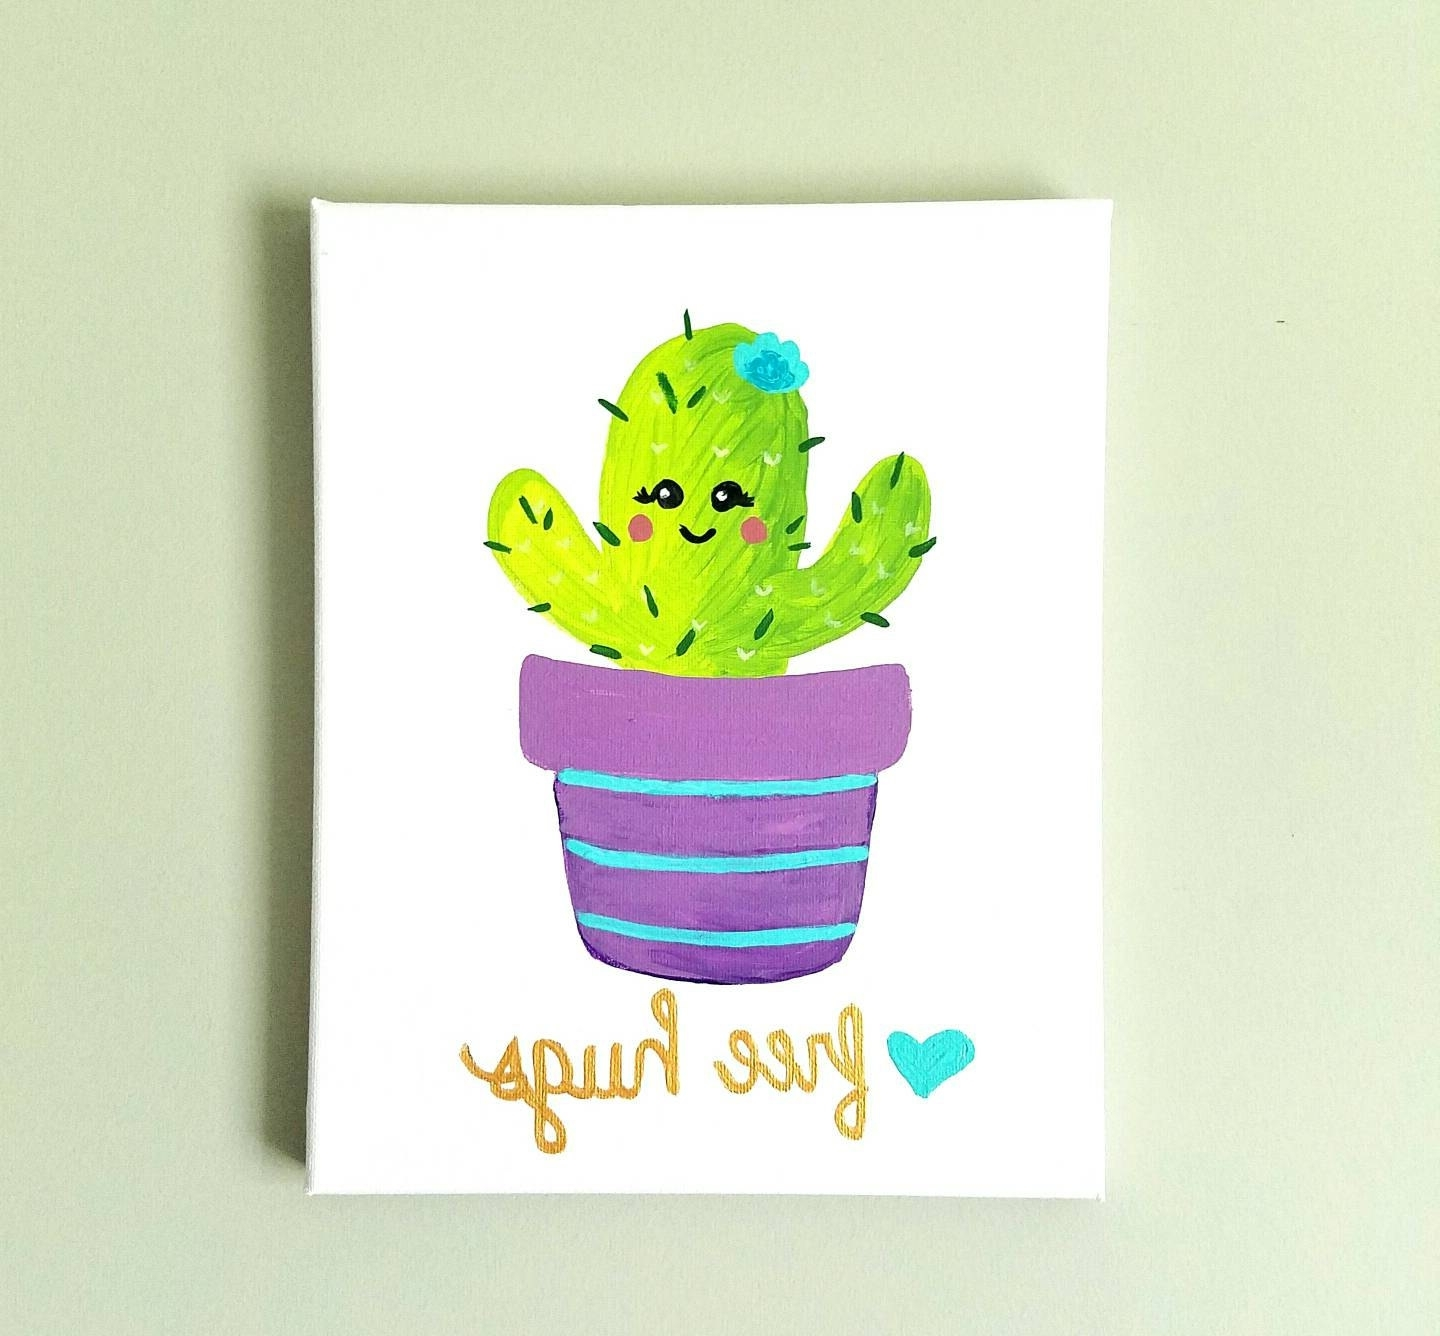 Etsy Regarding Cactus Wall Art (Gallery 2 of 20)